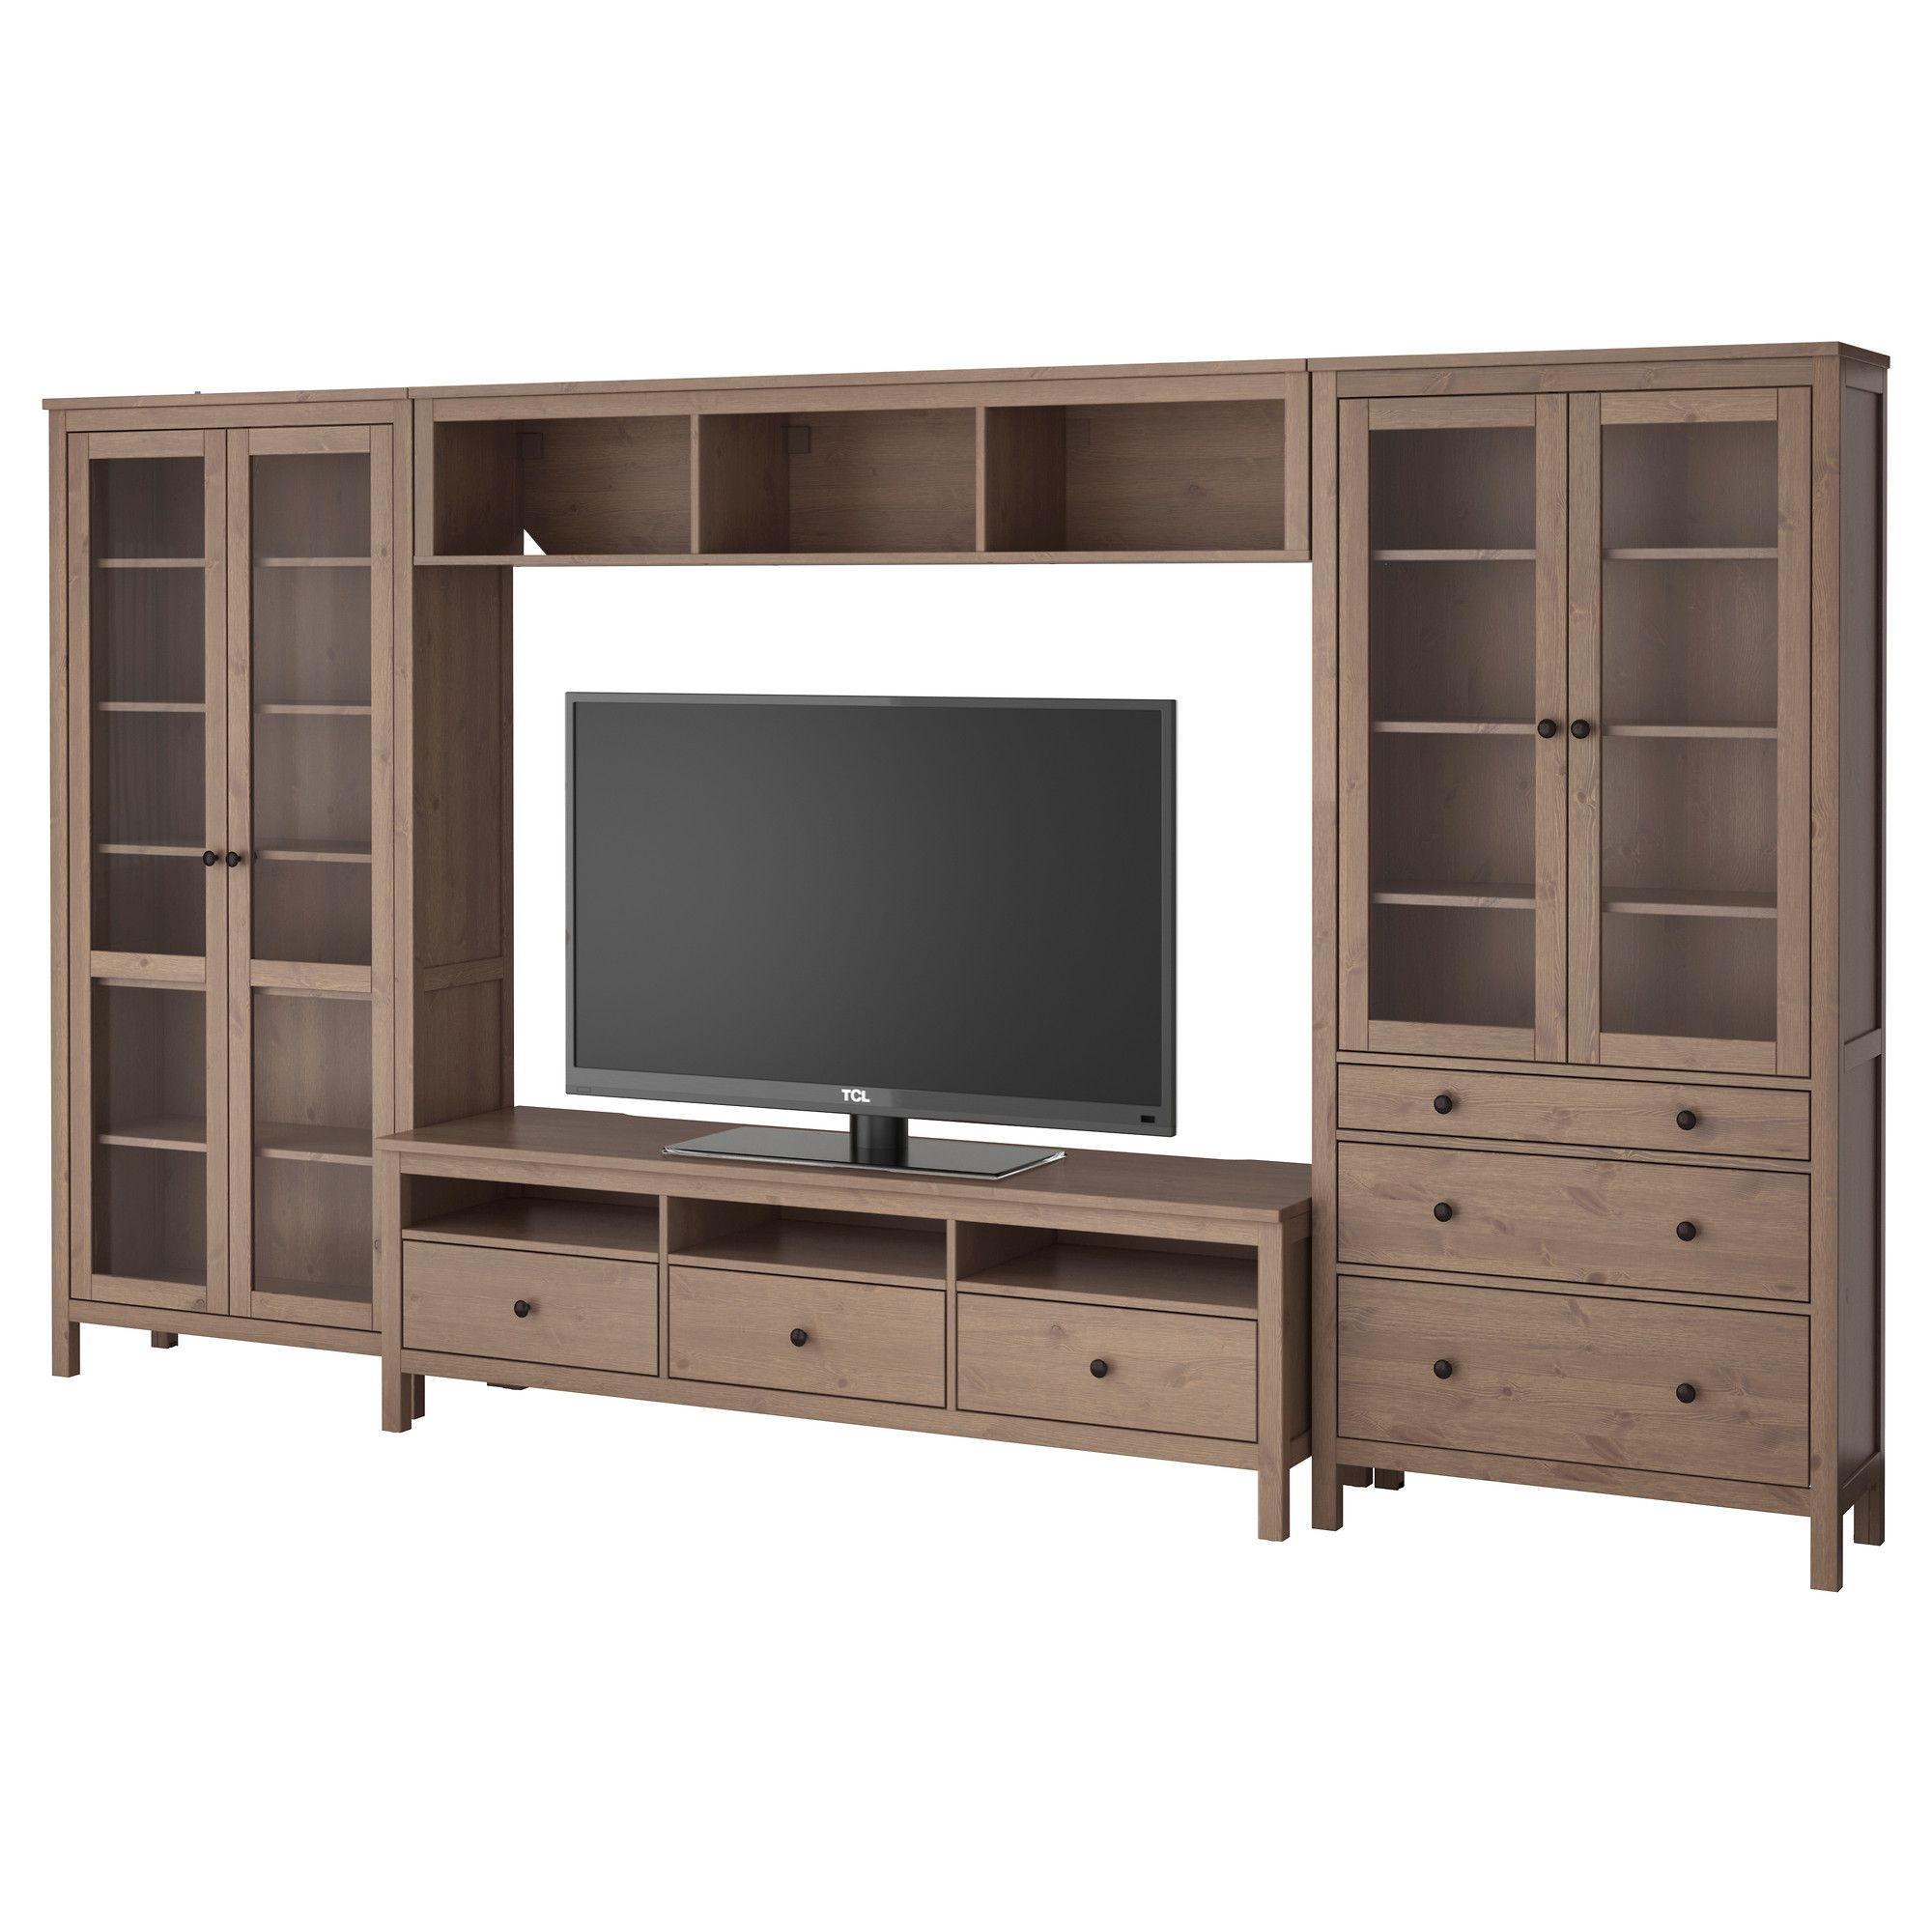 HEMNES TV storage bination glass doors gray brown IKEA I